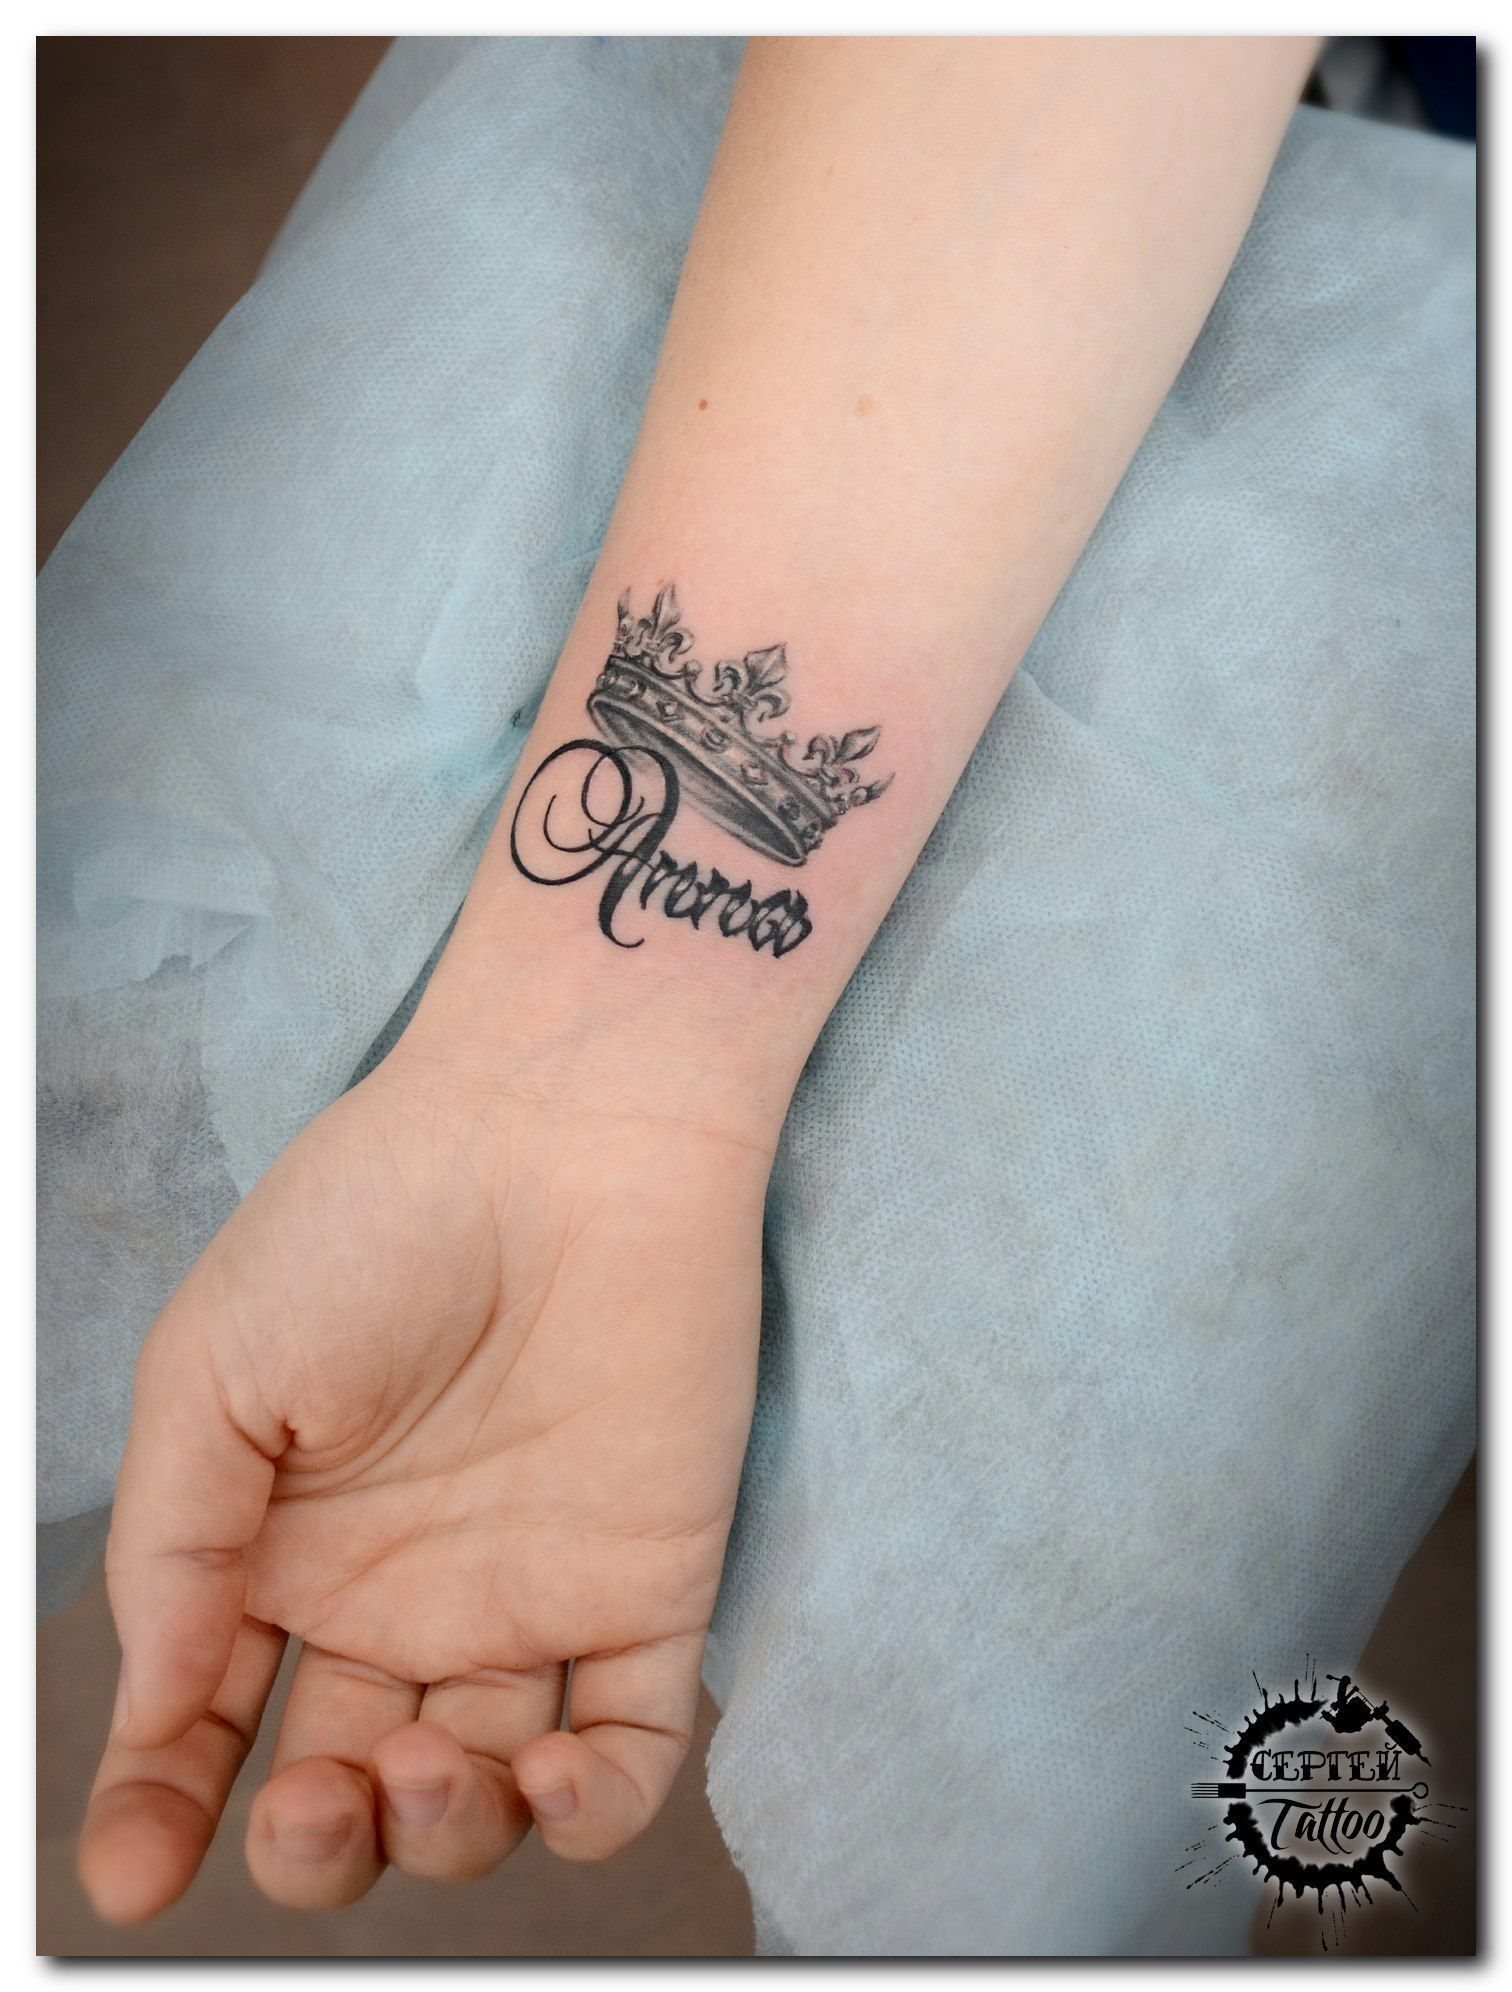 Interesting Name Tattoos And Brilliant Name Tattoo Ideas The Best Tattoo Models Designs Quo Name Tattoos On Wrist Crown Tattoos For Women Crown Tattoo Design